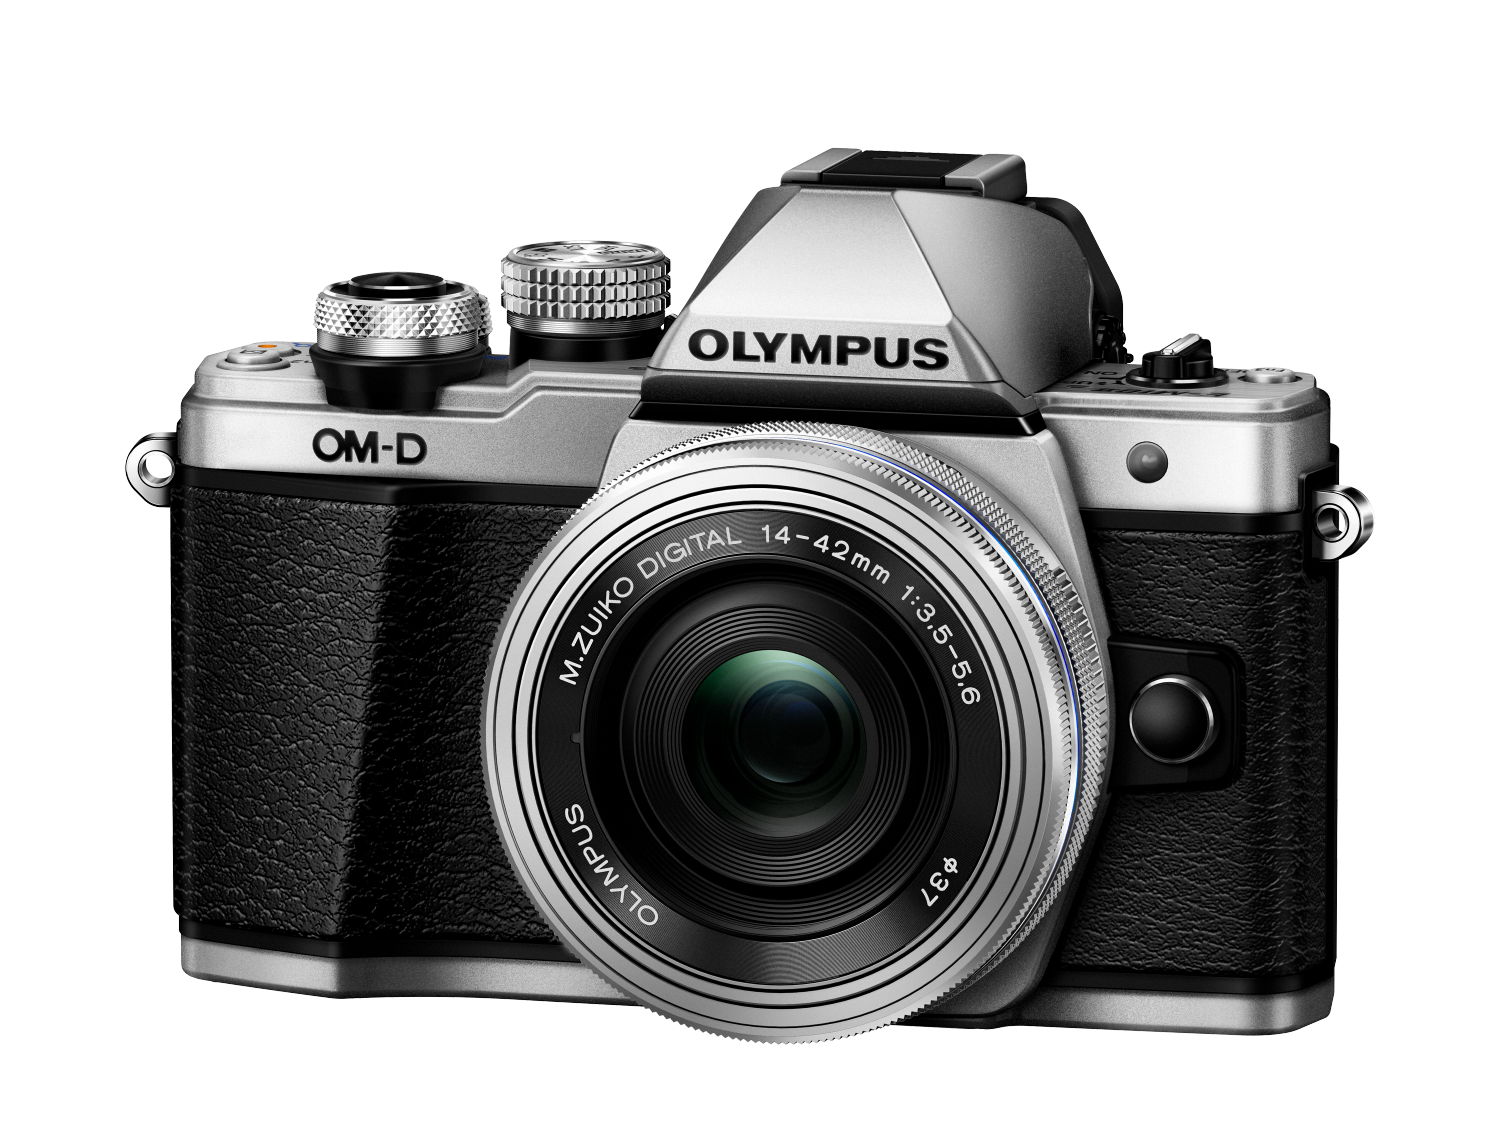 Фотоаппарат Olympus OM-D E-M10 Mark II Pancake Zoom Kit с 14-42 EZ серебристый (V207052SE000) фото